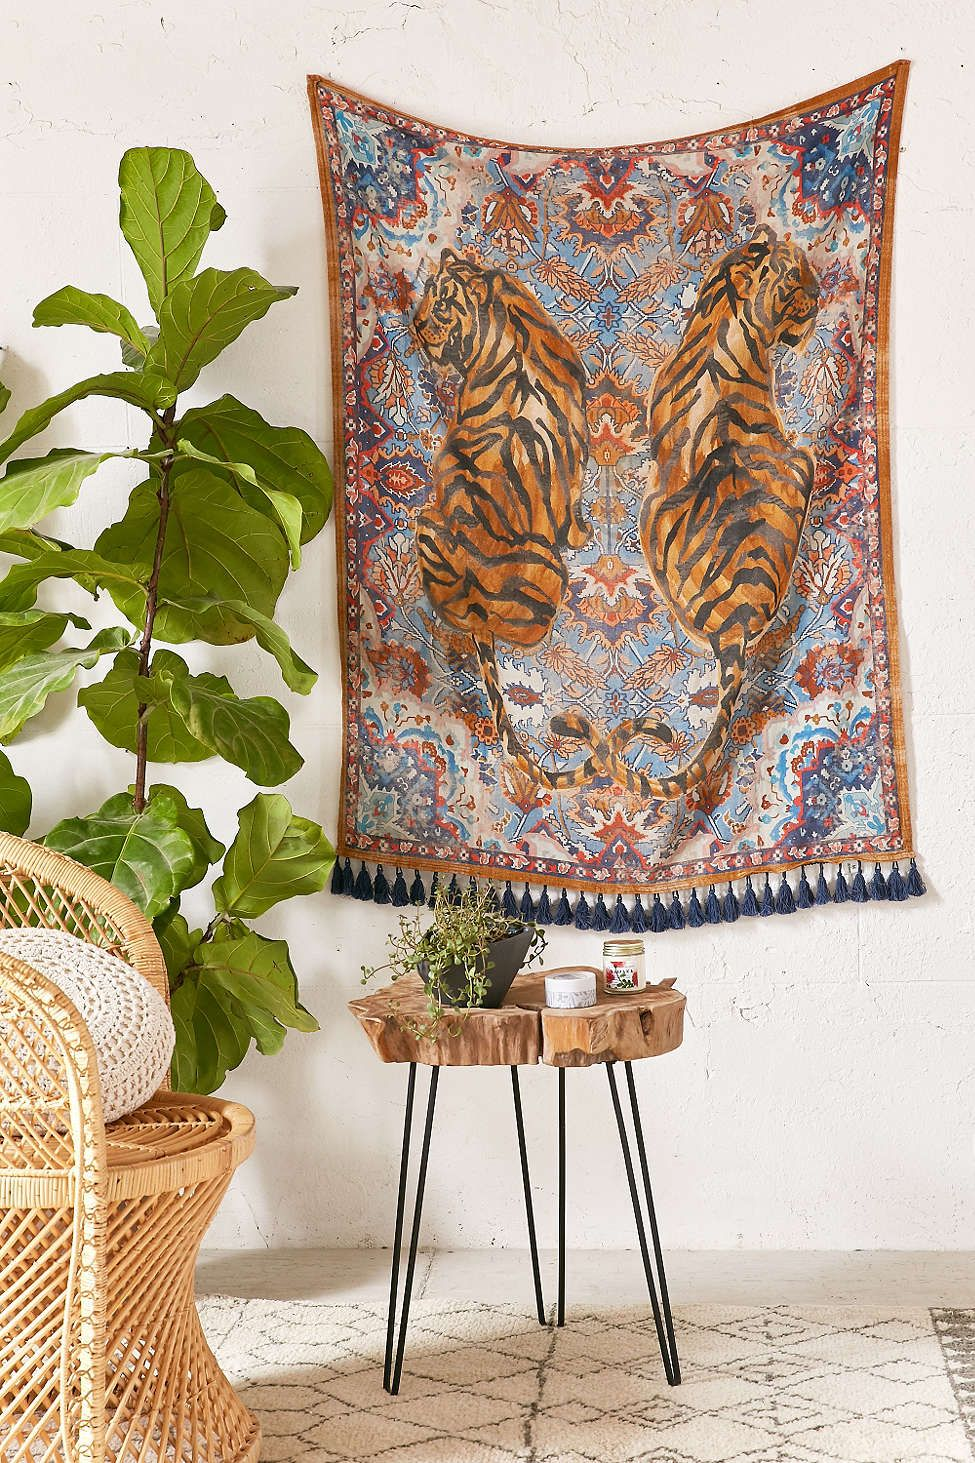 Urban outfitters bedroom tapestry - Room Inspiration Tiger Twins Tapestry Urban Outfitters